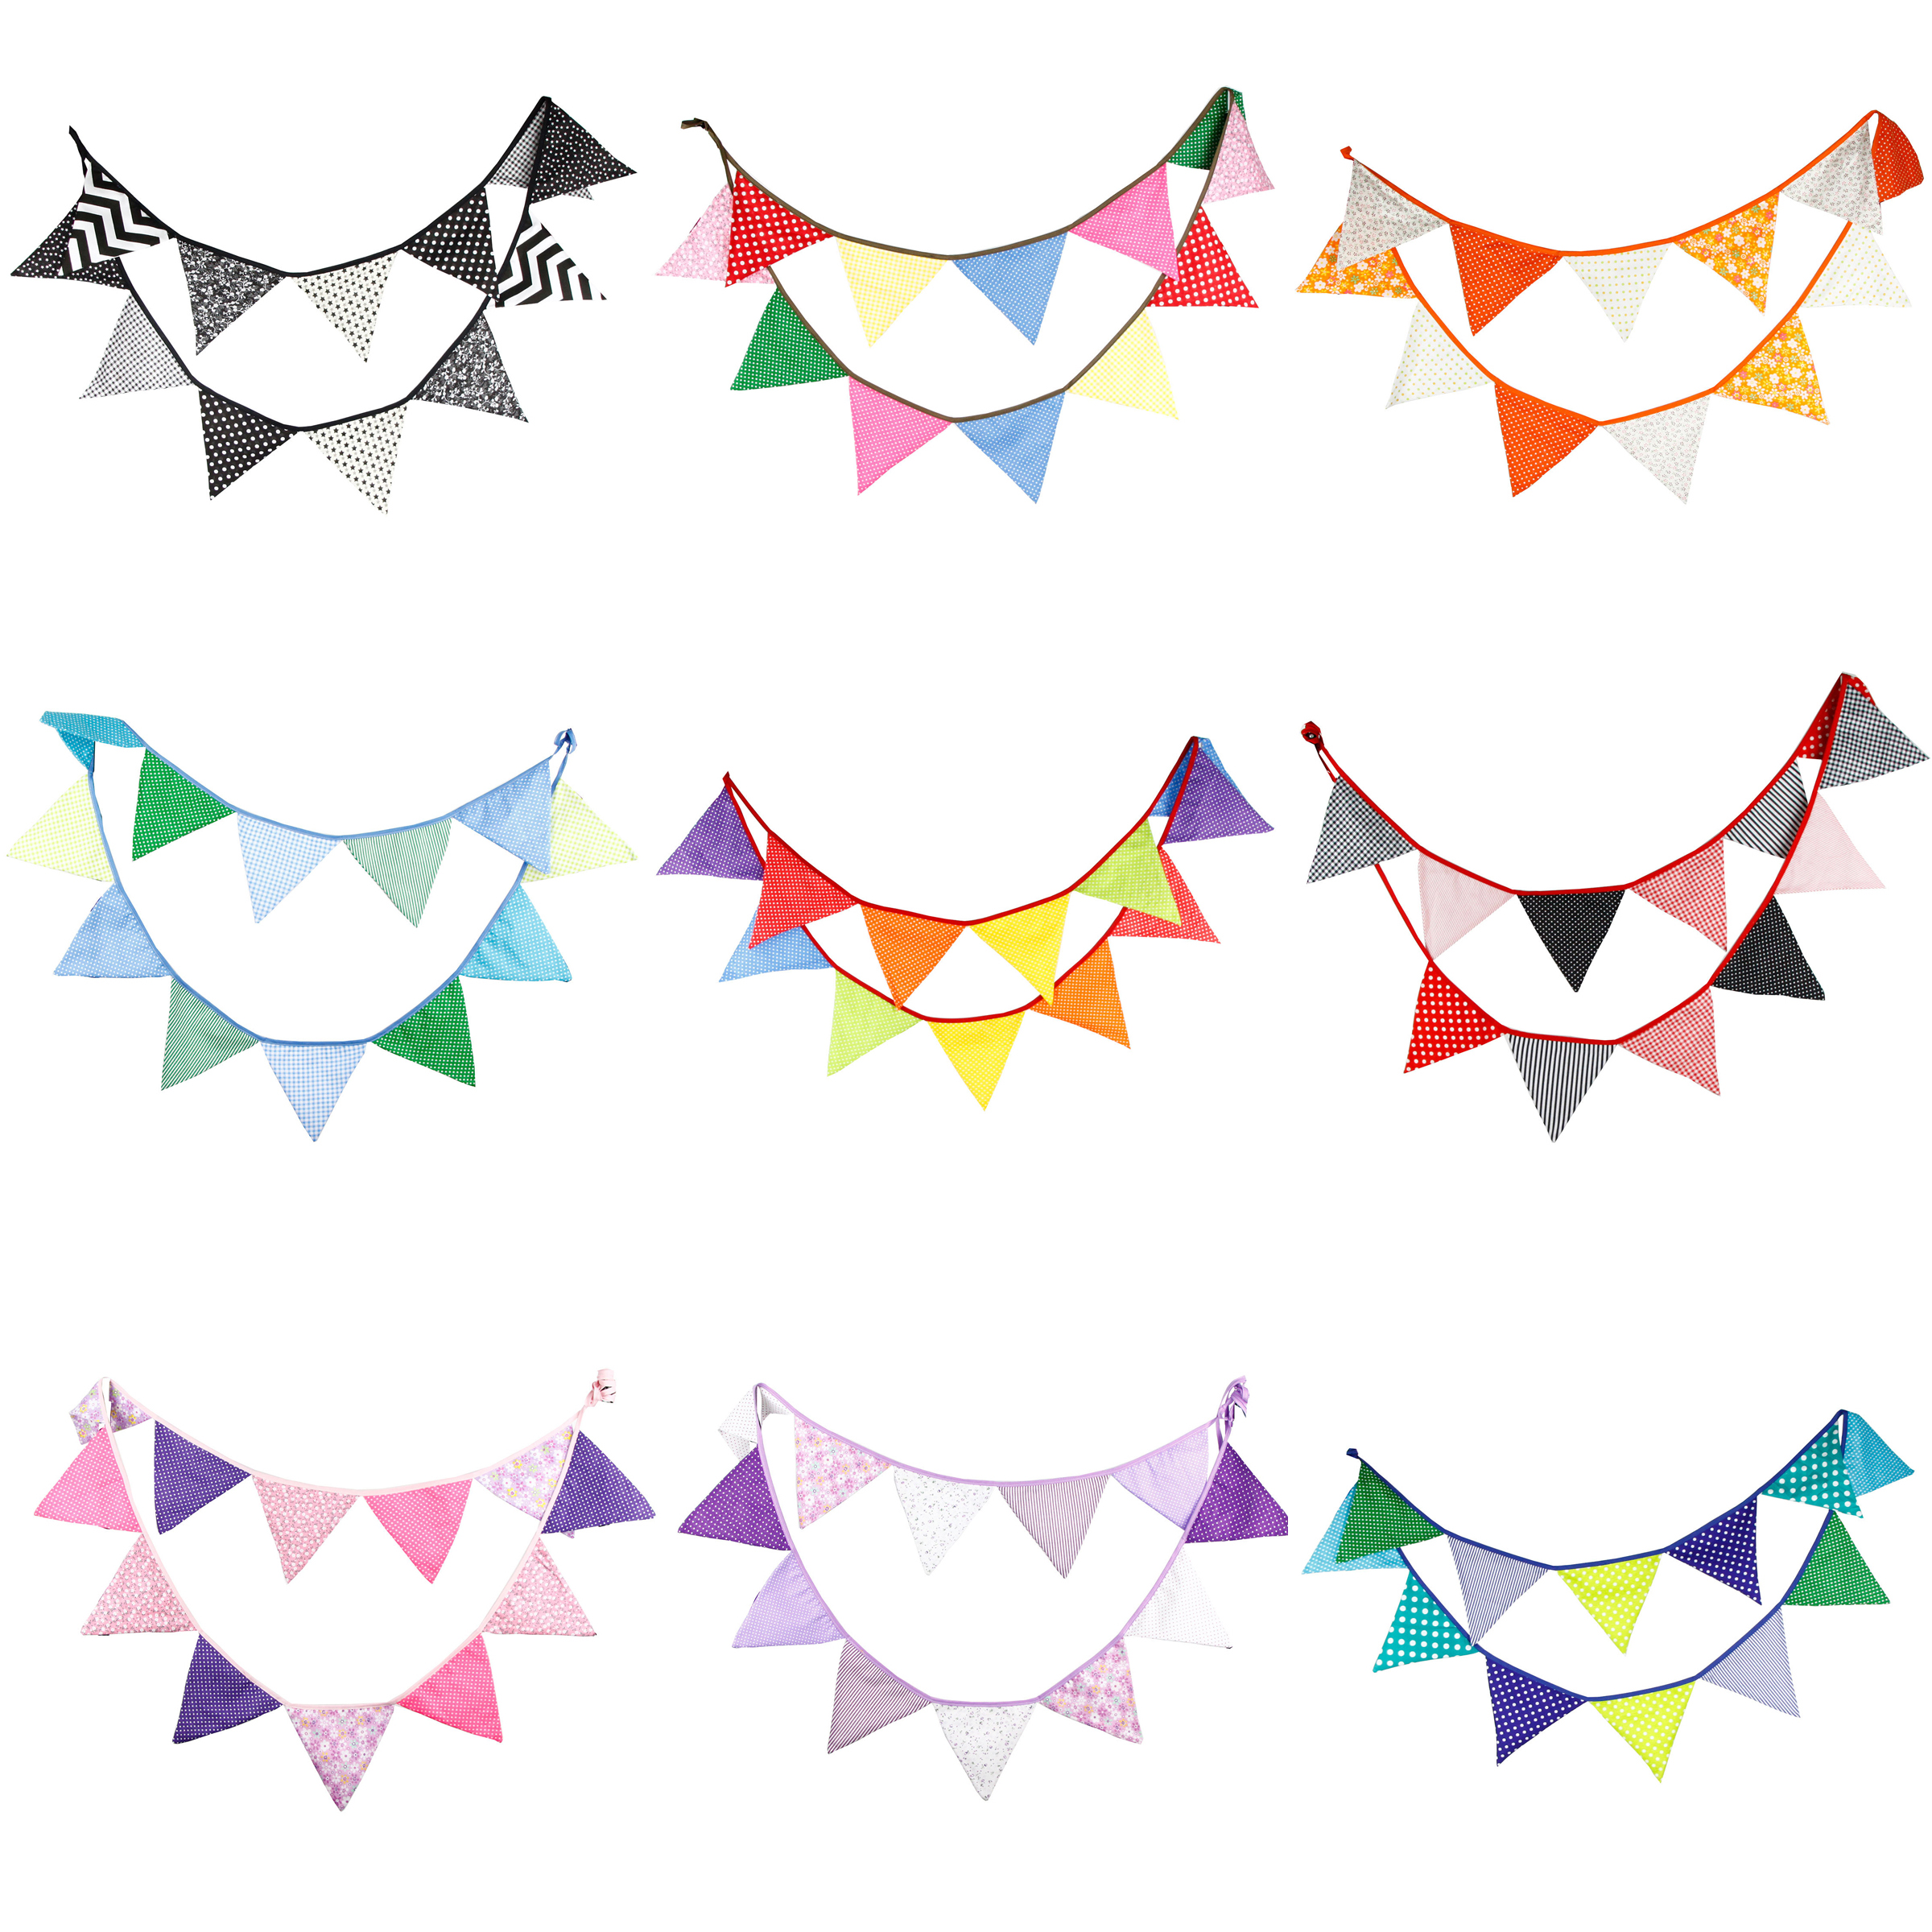 3.2m 12 Flags Handmade Cotton <strong>Cloth</strong> <strong>Banner</strong> Pennant Garland Children Kids Baby Shower Birthday Bunting Wedding Party Decoration